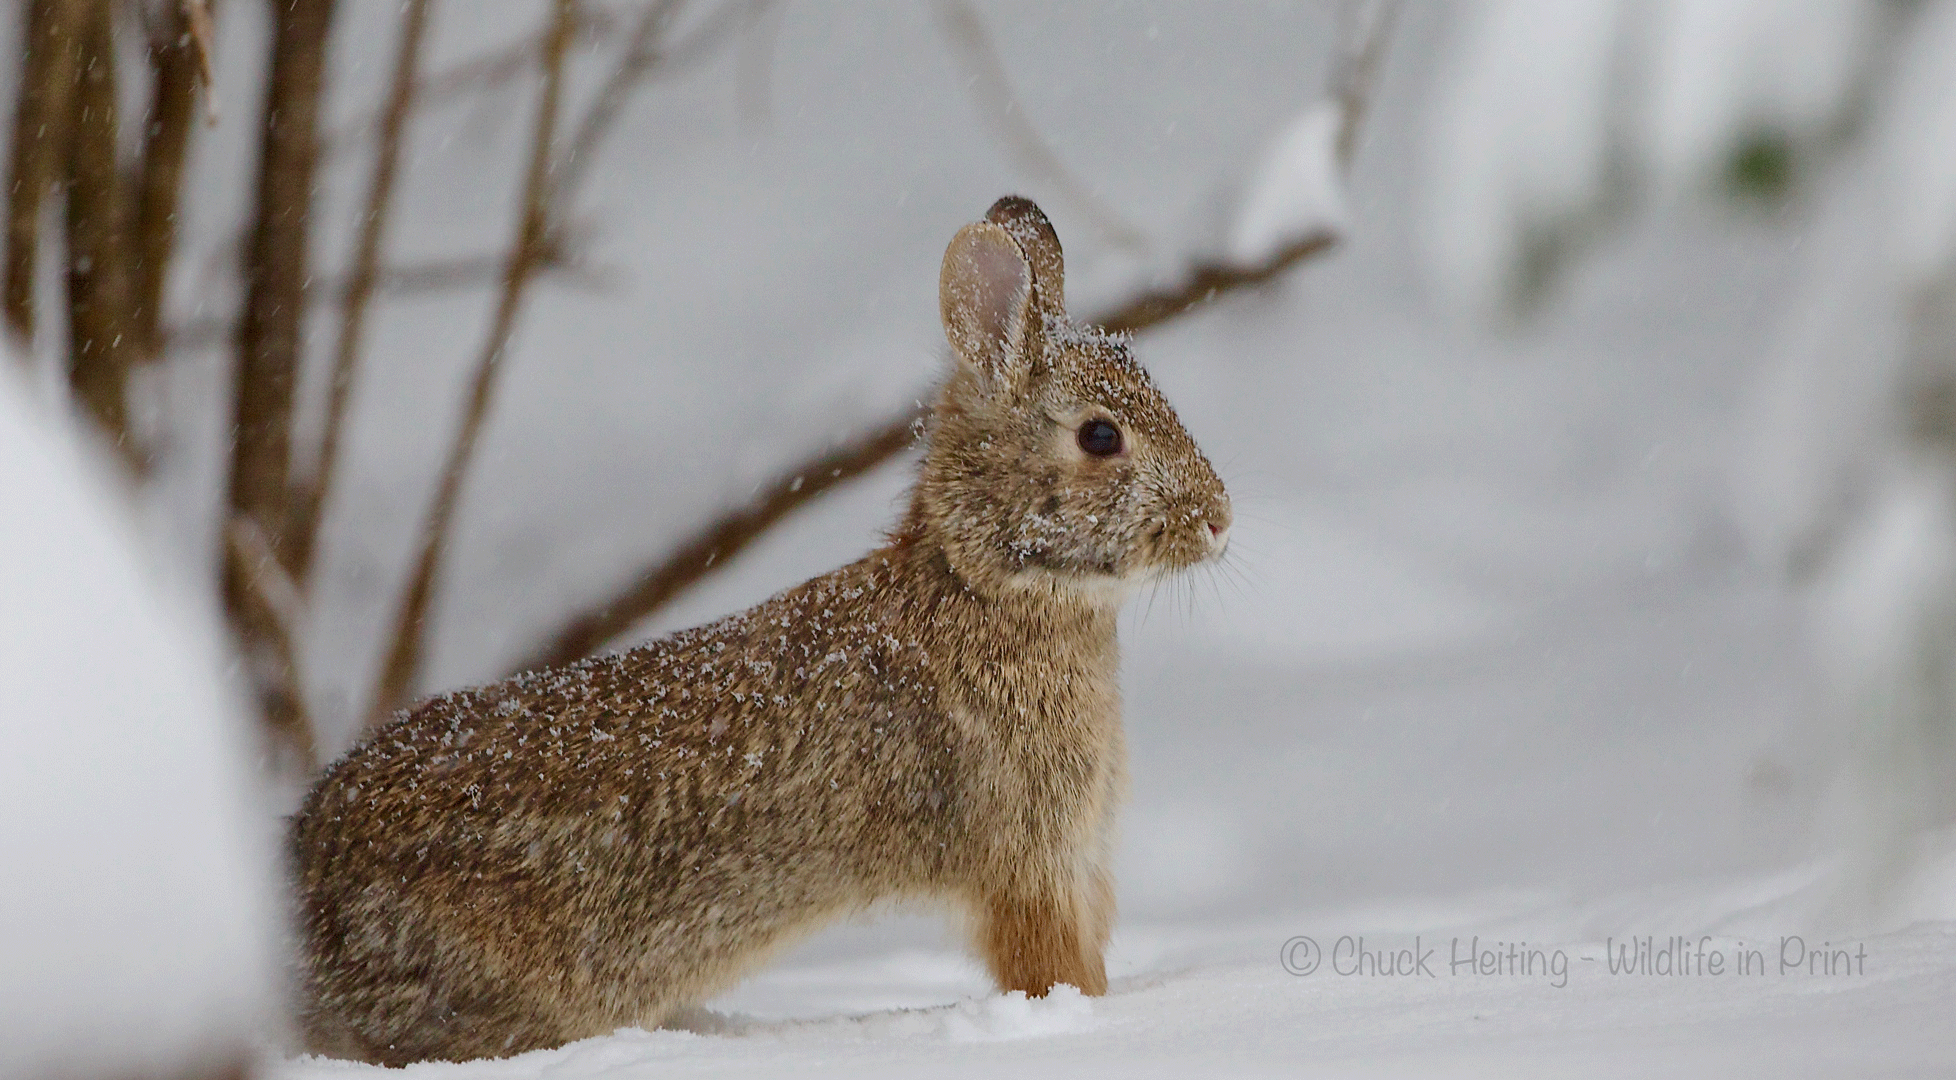 Picture of a rabbit in the snow.